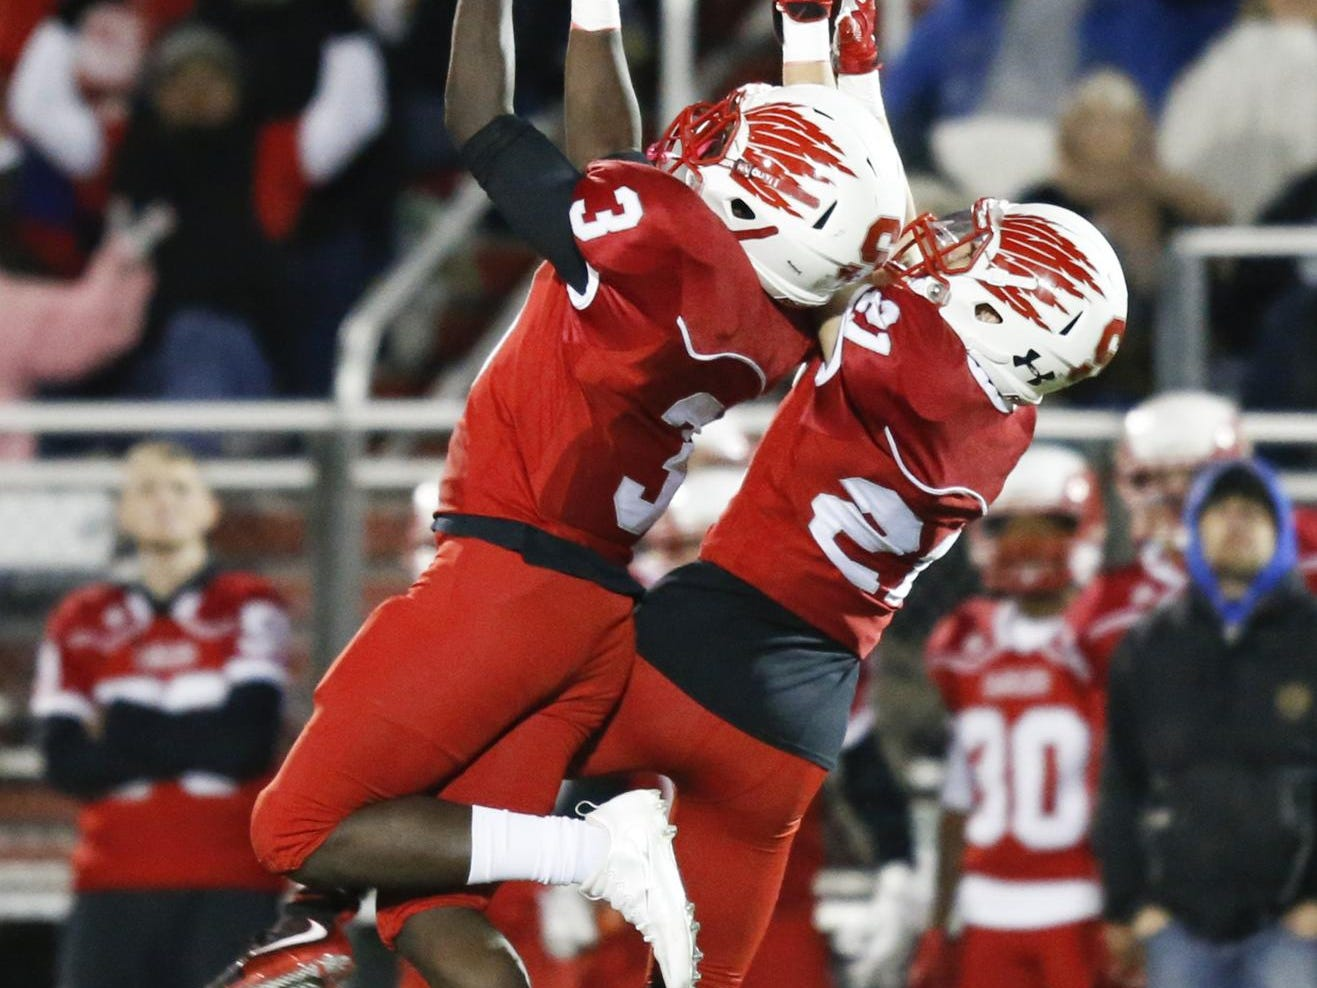 Smyrna defensive backs Larsen Wilson (3) and Jacob Soroko vie for an interception, taken in by Wilson, in the second quarter of a DIAA Division I state tournament semifinal Friday at Smyrna High School.